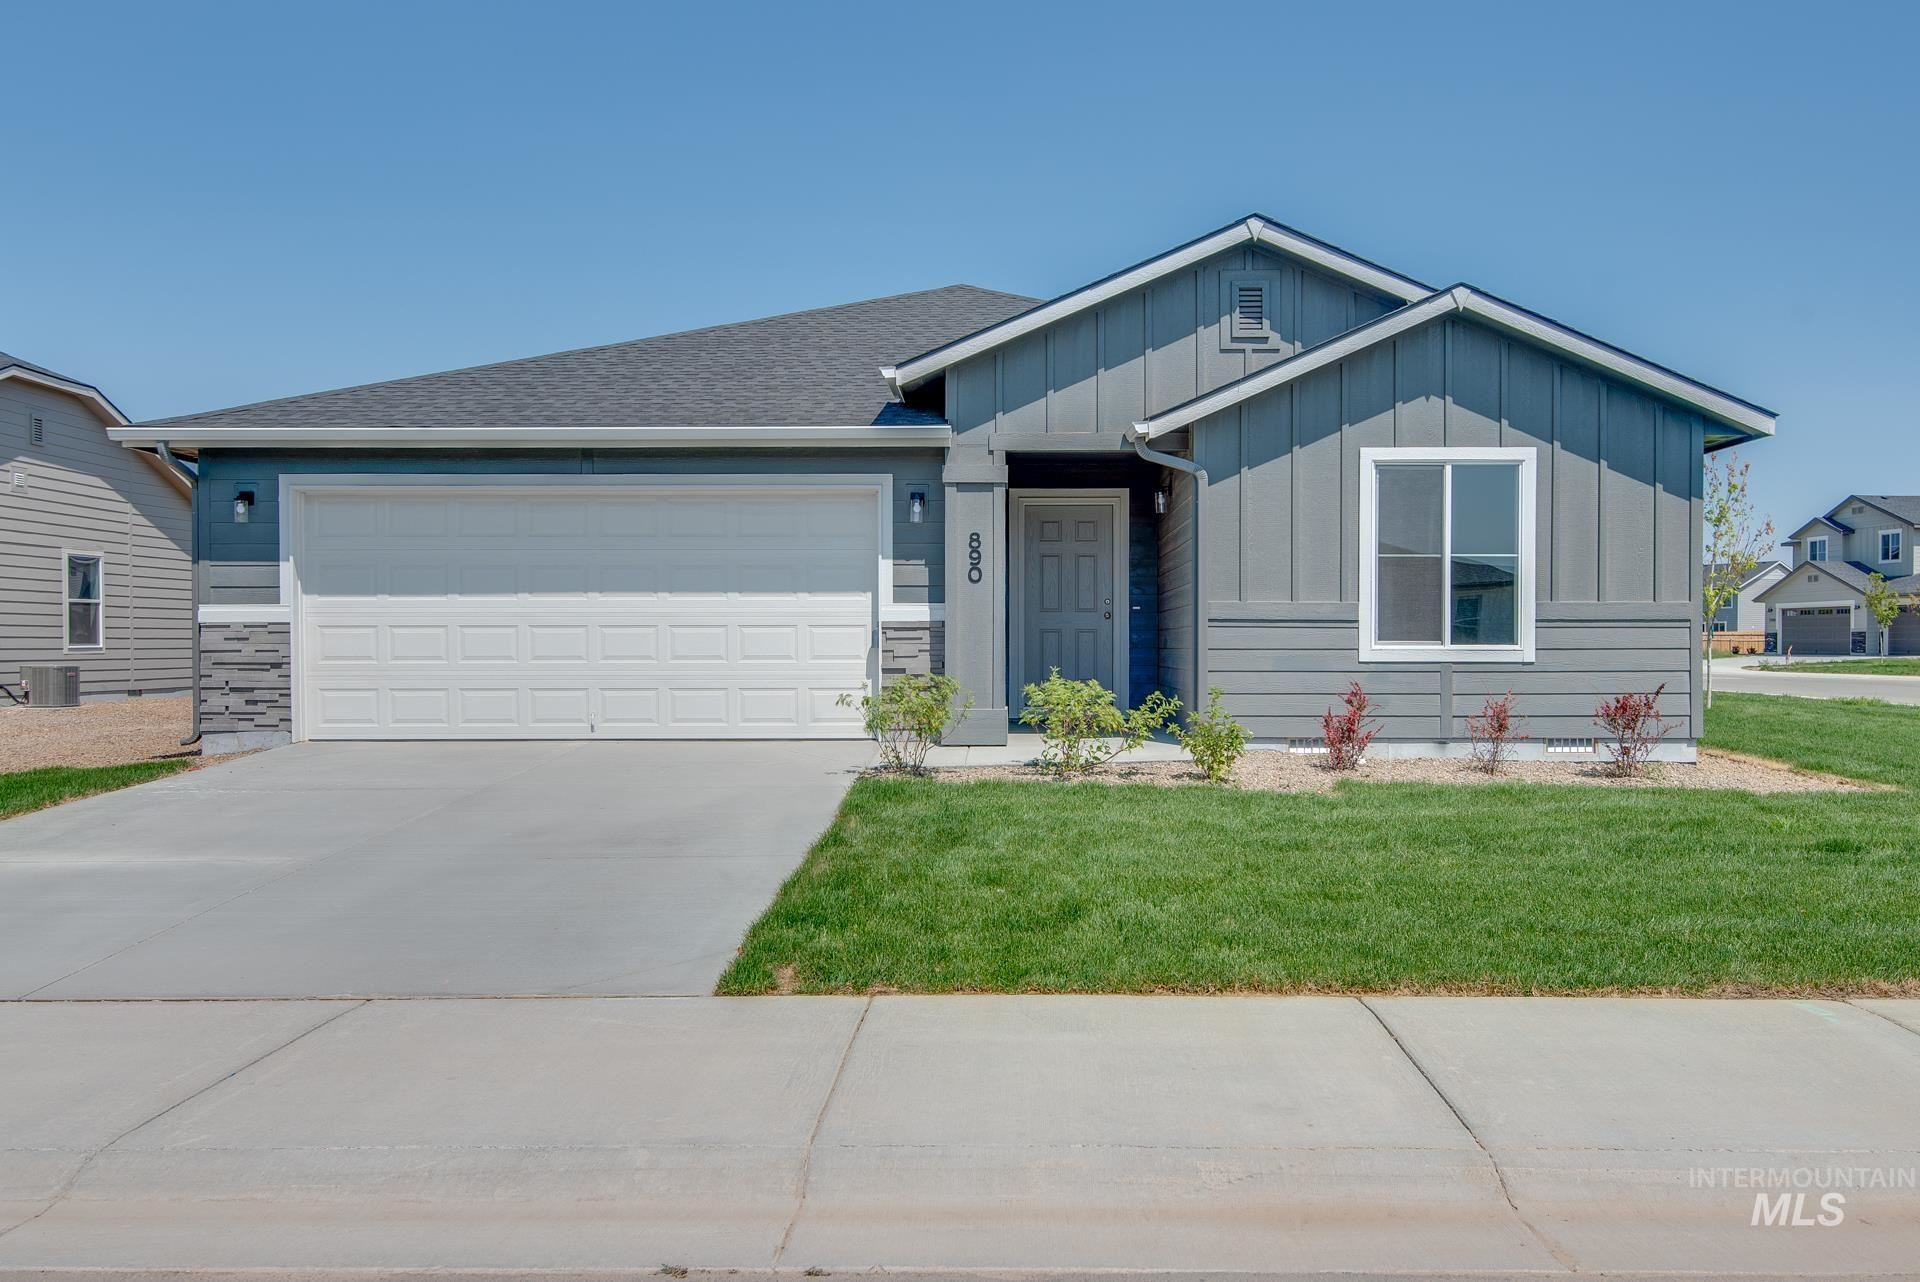 Photo of 890 SW Crested St, Mountain Home, ID 83647 (MLS # 98807245)